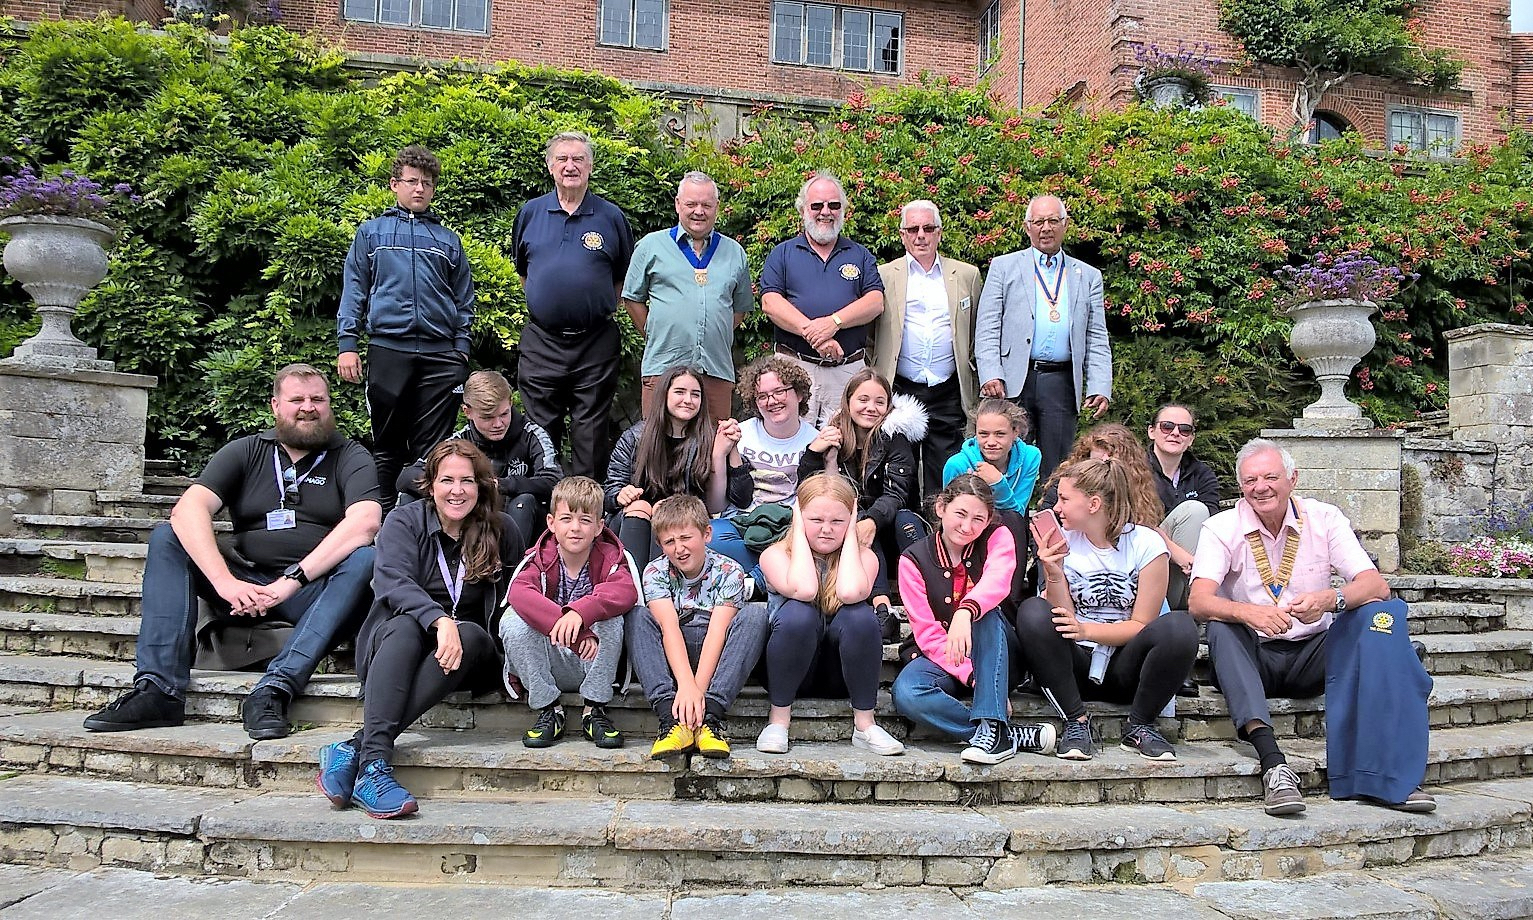 young-carers-on-the-steps-of-port-lympne-house-with-representatives-of-folkestone-channel-hythe-and-romney-marsh-rotary-clubs.jpg